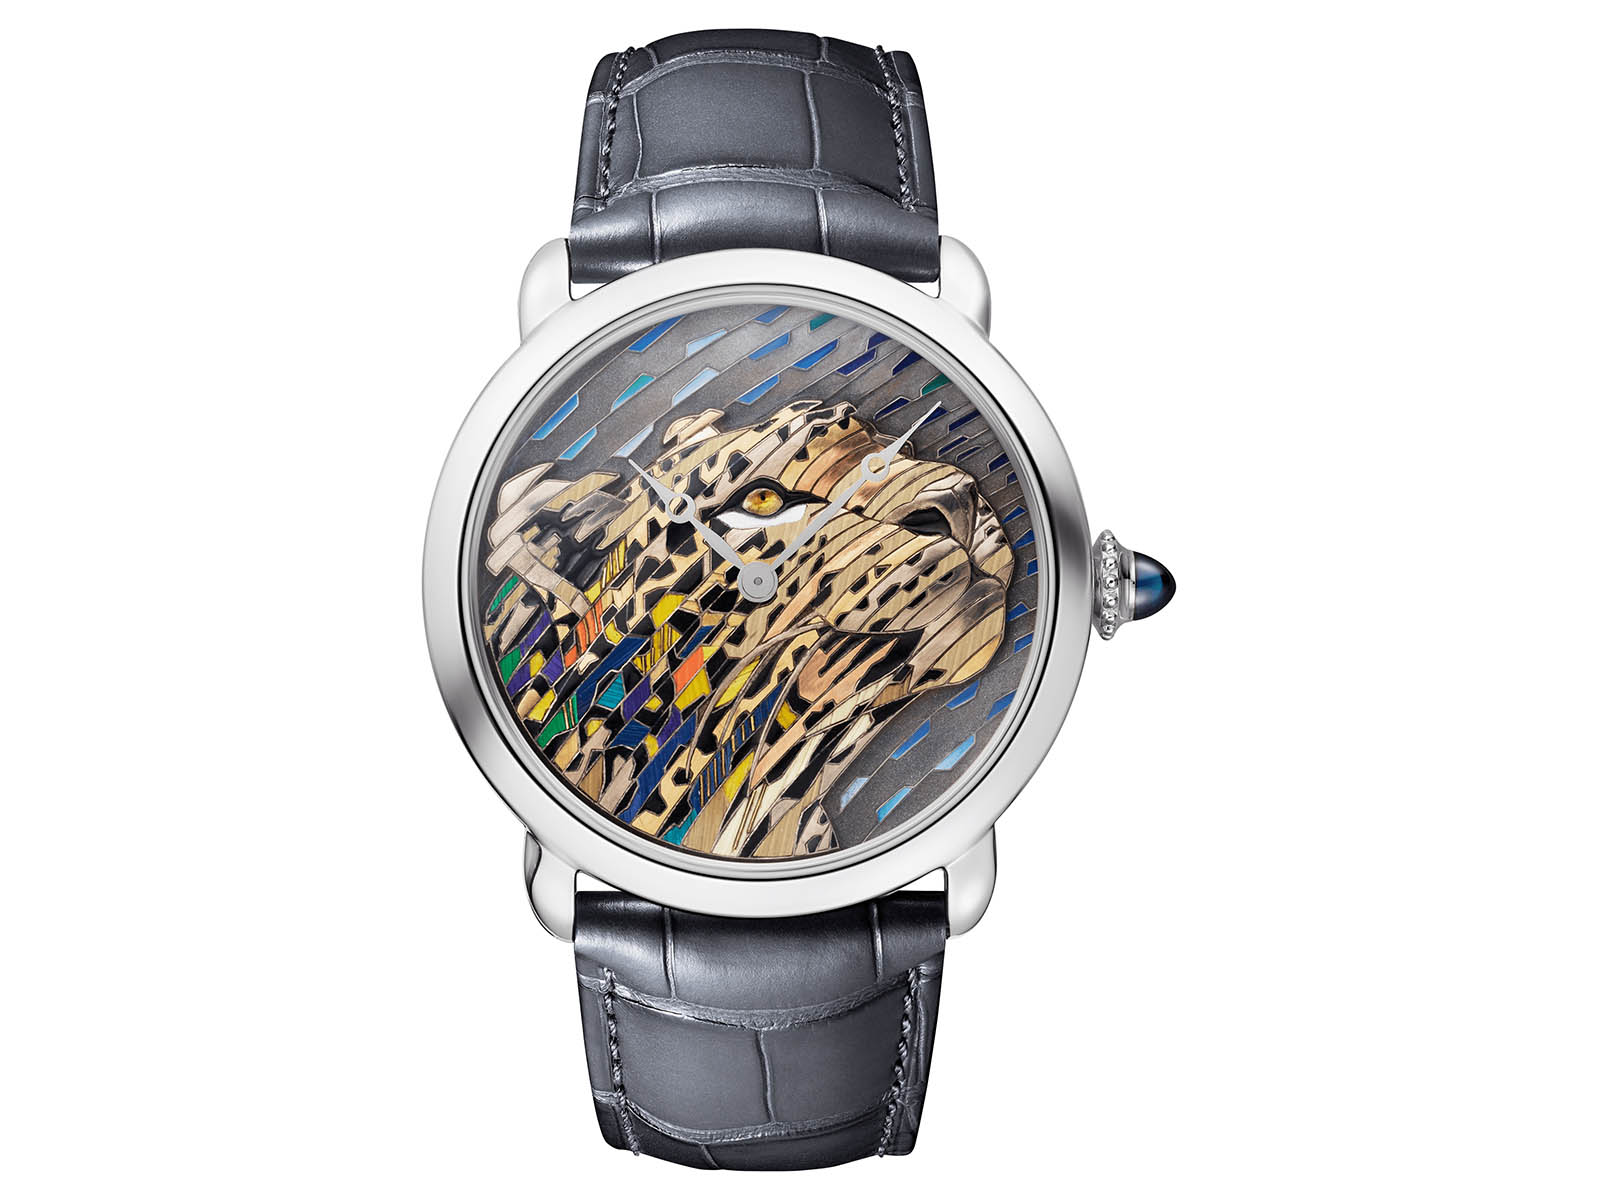 ronde-louis-cartier-straw-and-gold-marquetry-metiers-d-art-watches-wonders-2020-3.jpg